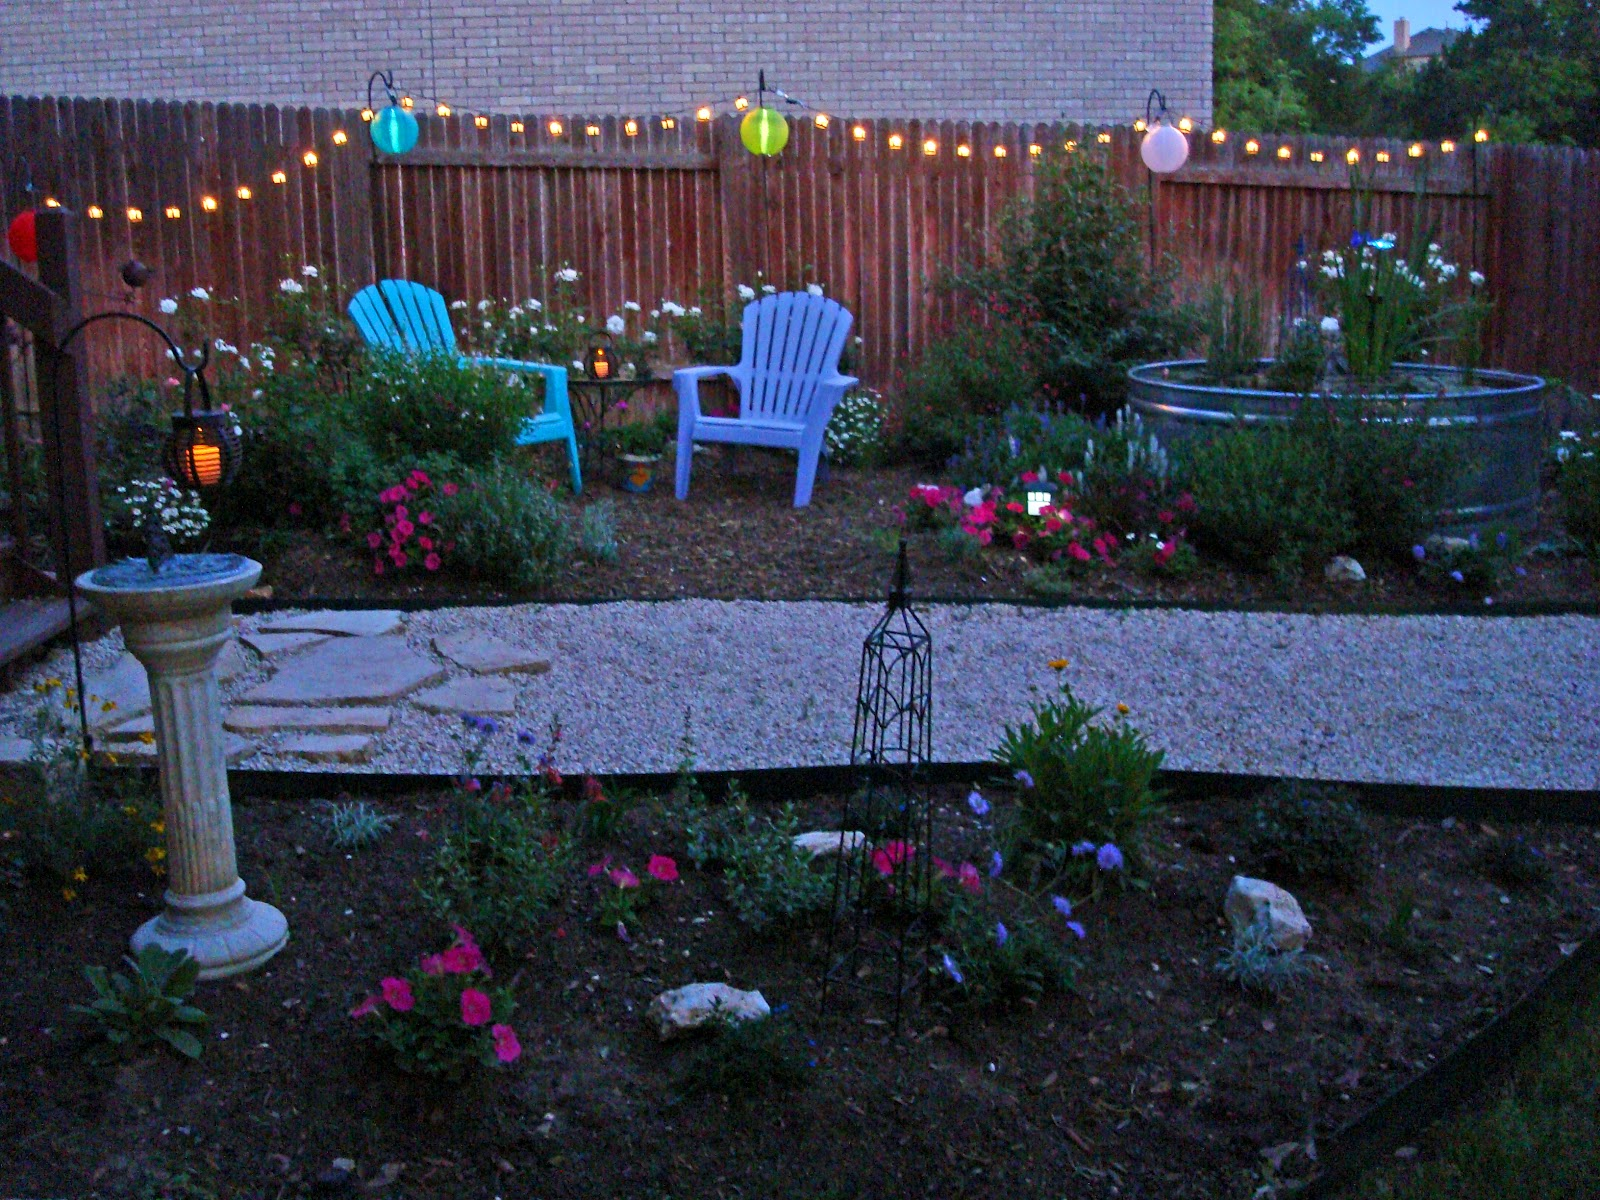 Garden Path Wanderings: Party lights are hung... where's ...